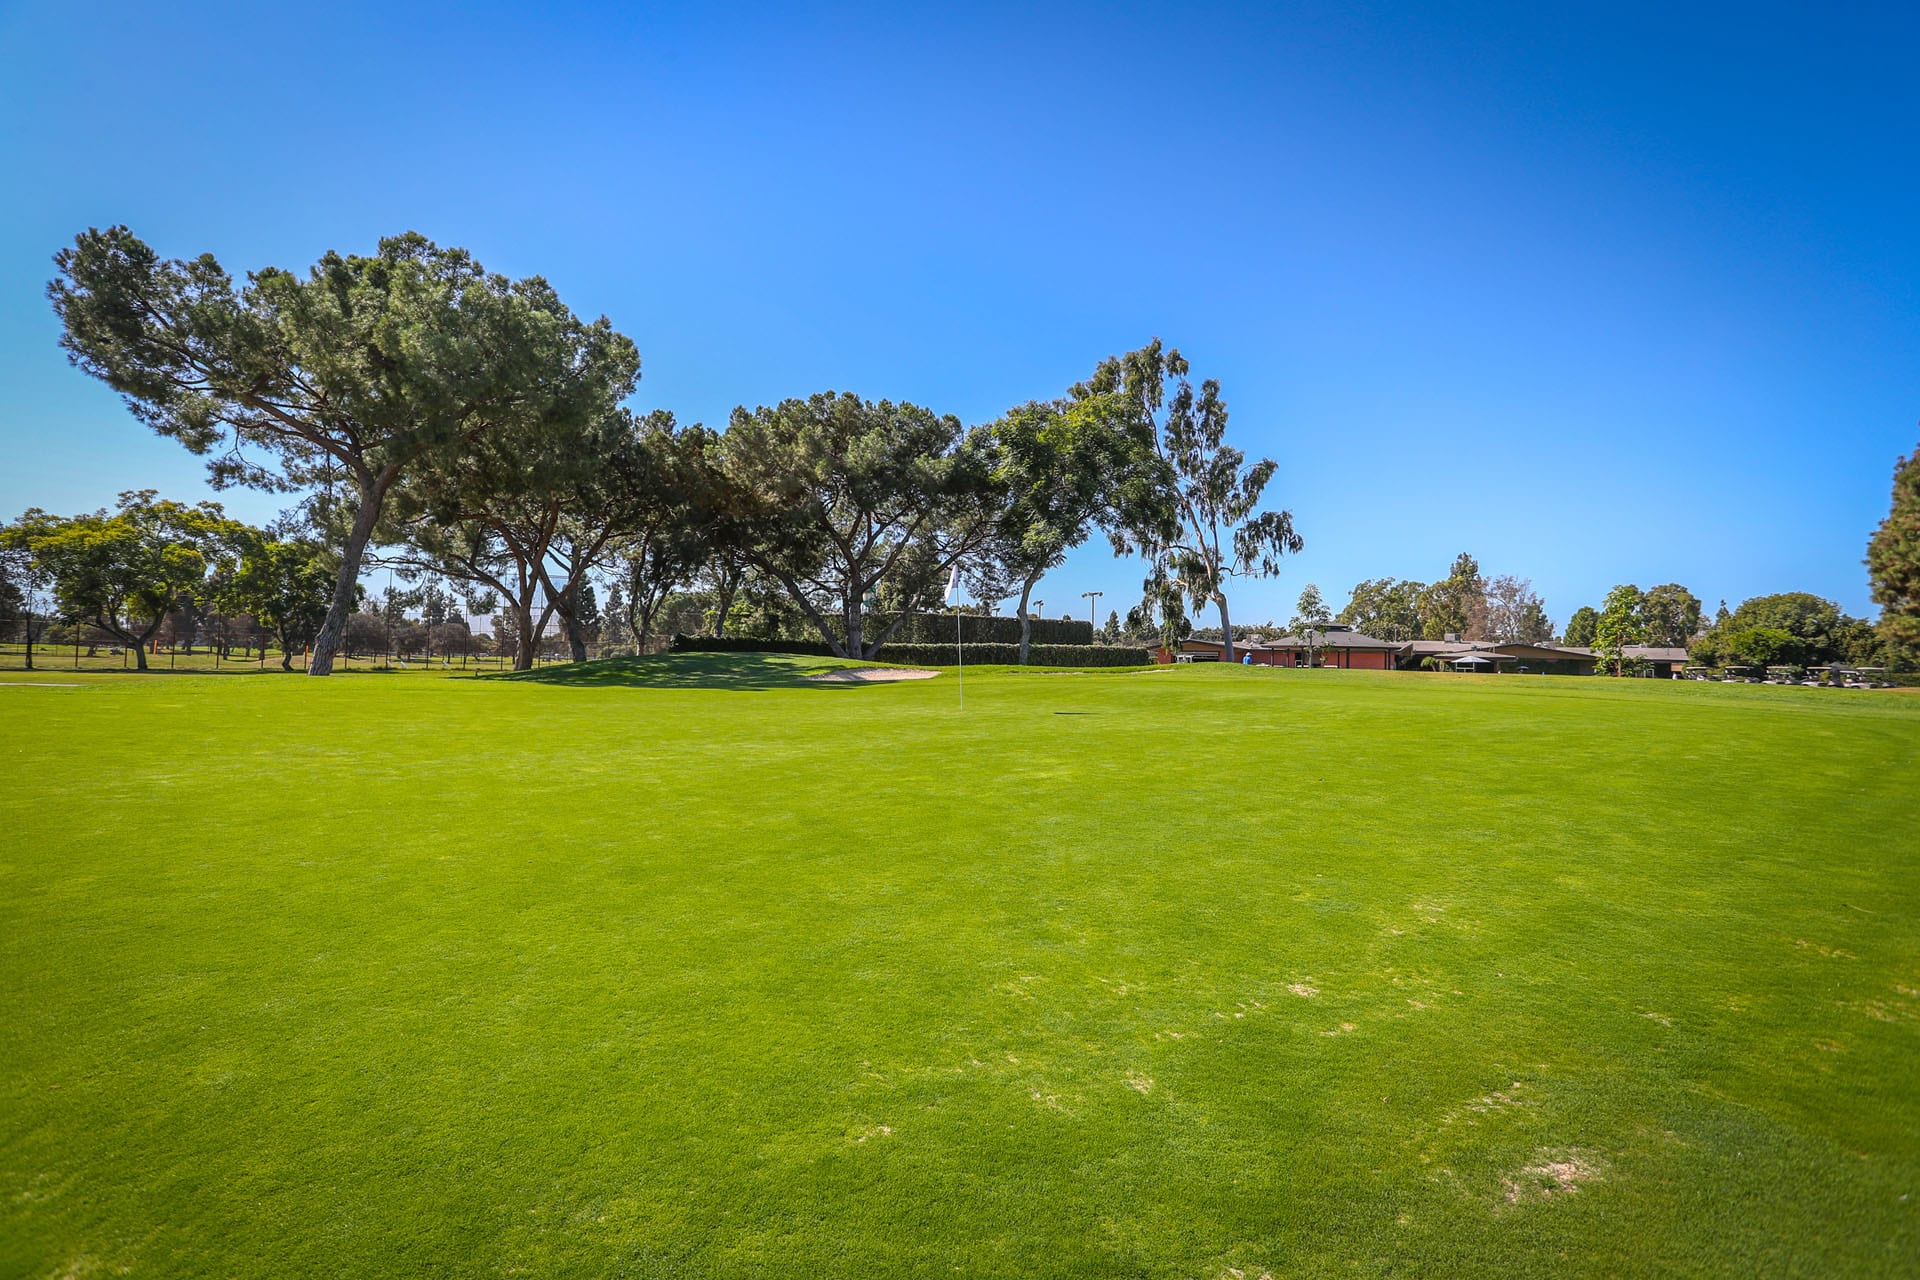 Wide open grass area and trees